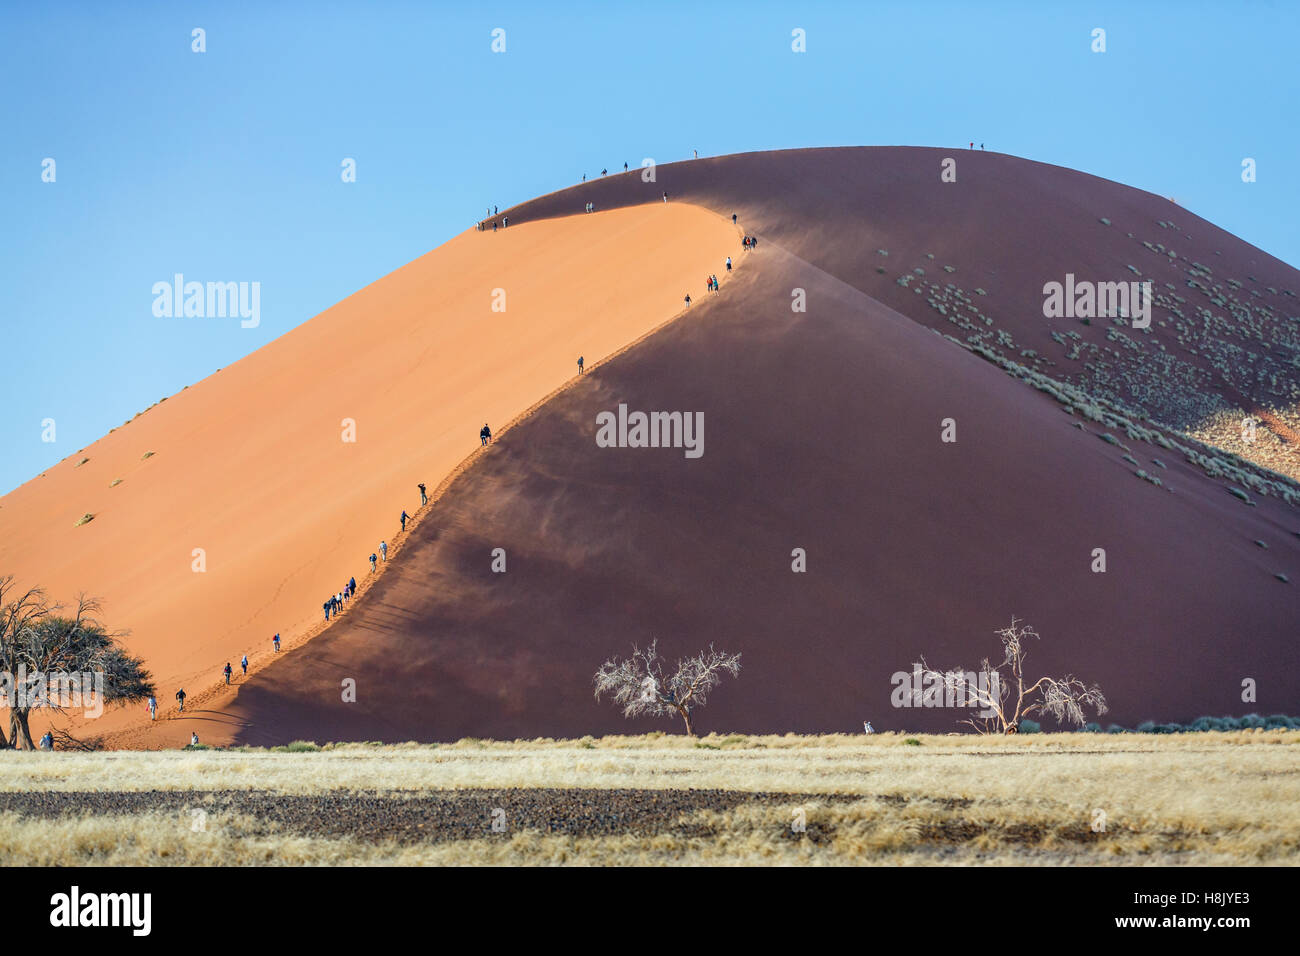 Hikers climbing the renowned dune 45 in Namibia - Stock Image